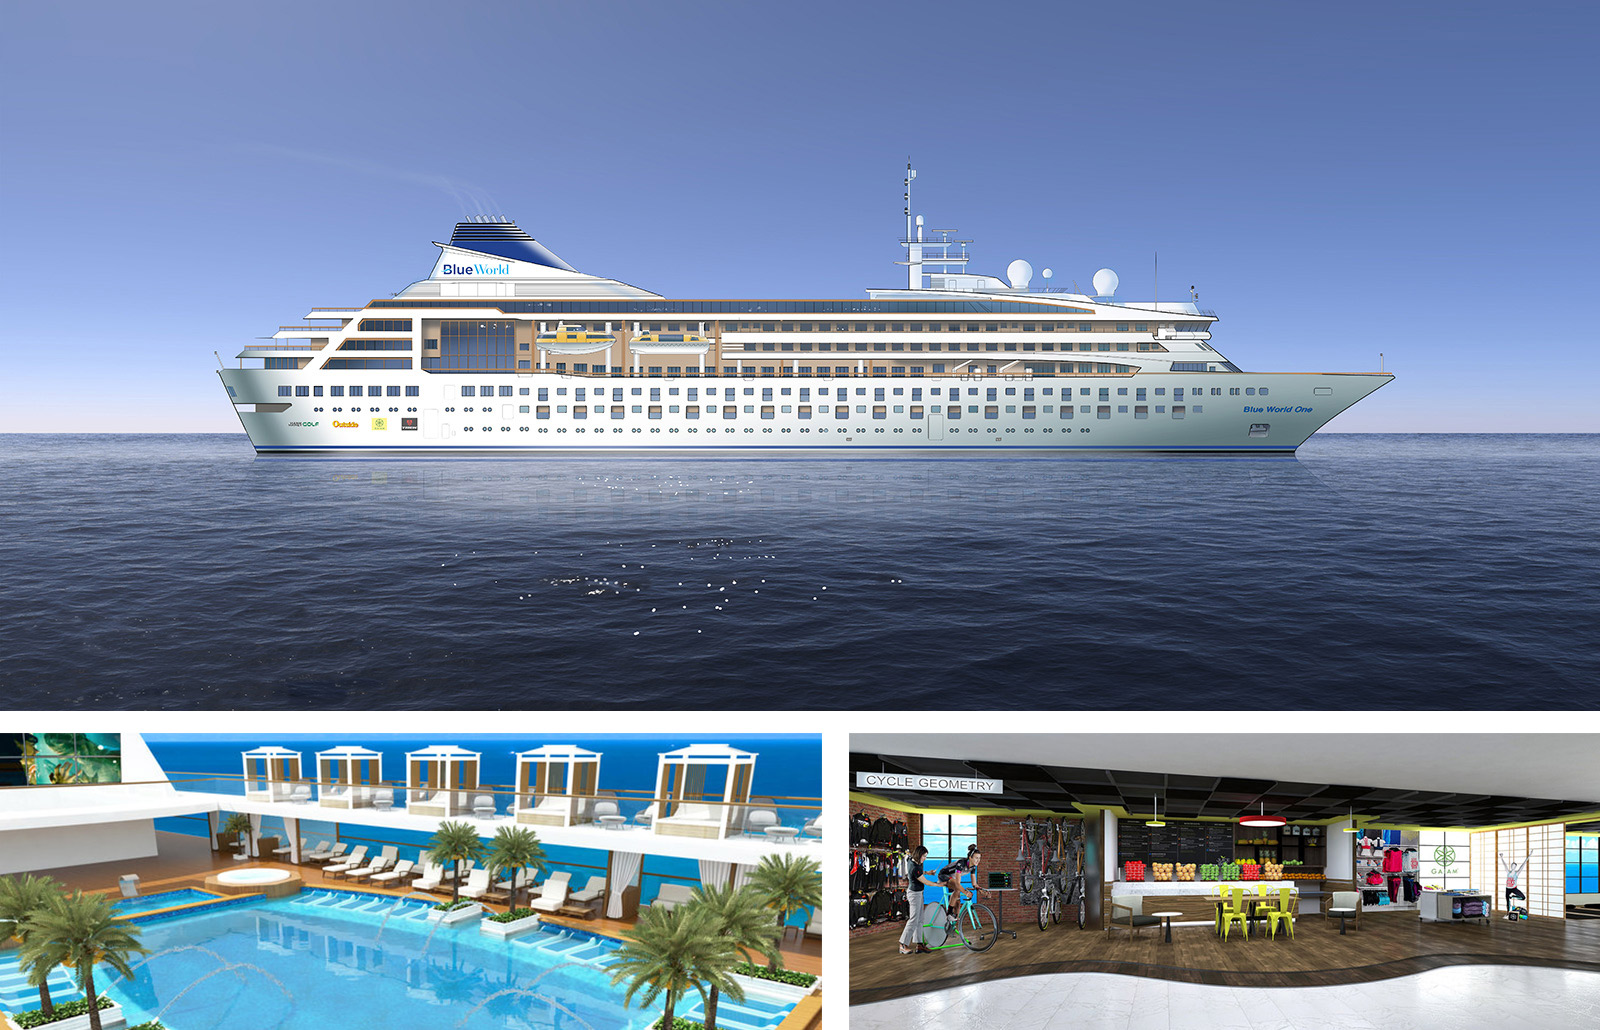 Ship Renderings & Videos - High-resolution ship renderings and video clips including:- Ship Exterior- Mid Ship Pool- Therapy Pool- Sports Deck- Staterooms- Owners Residences+ More